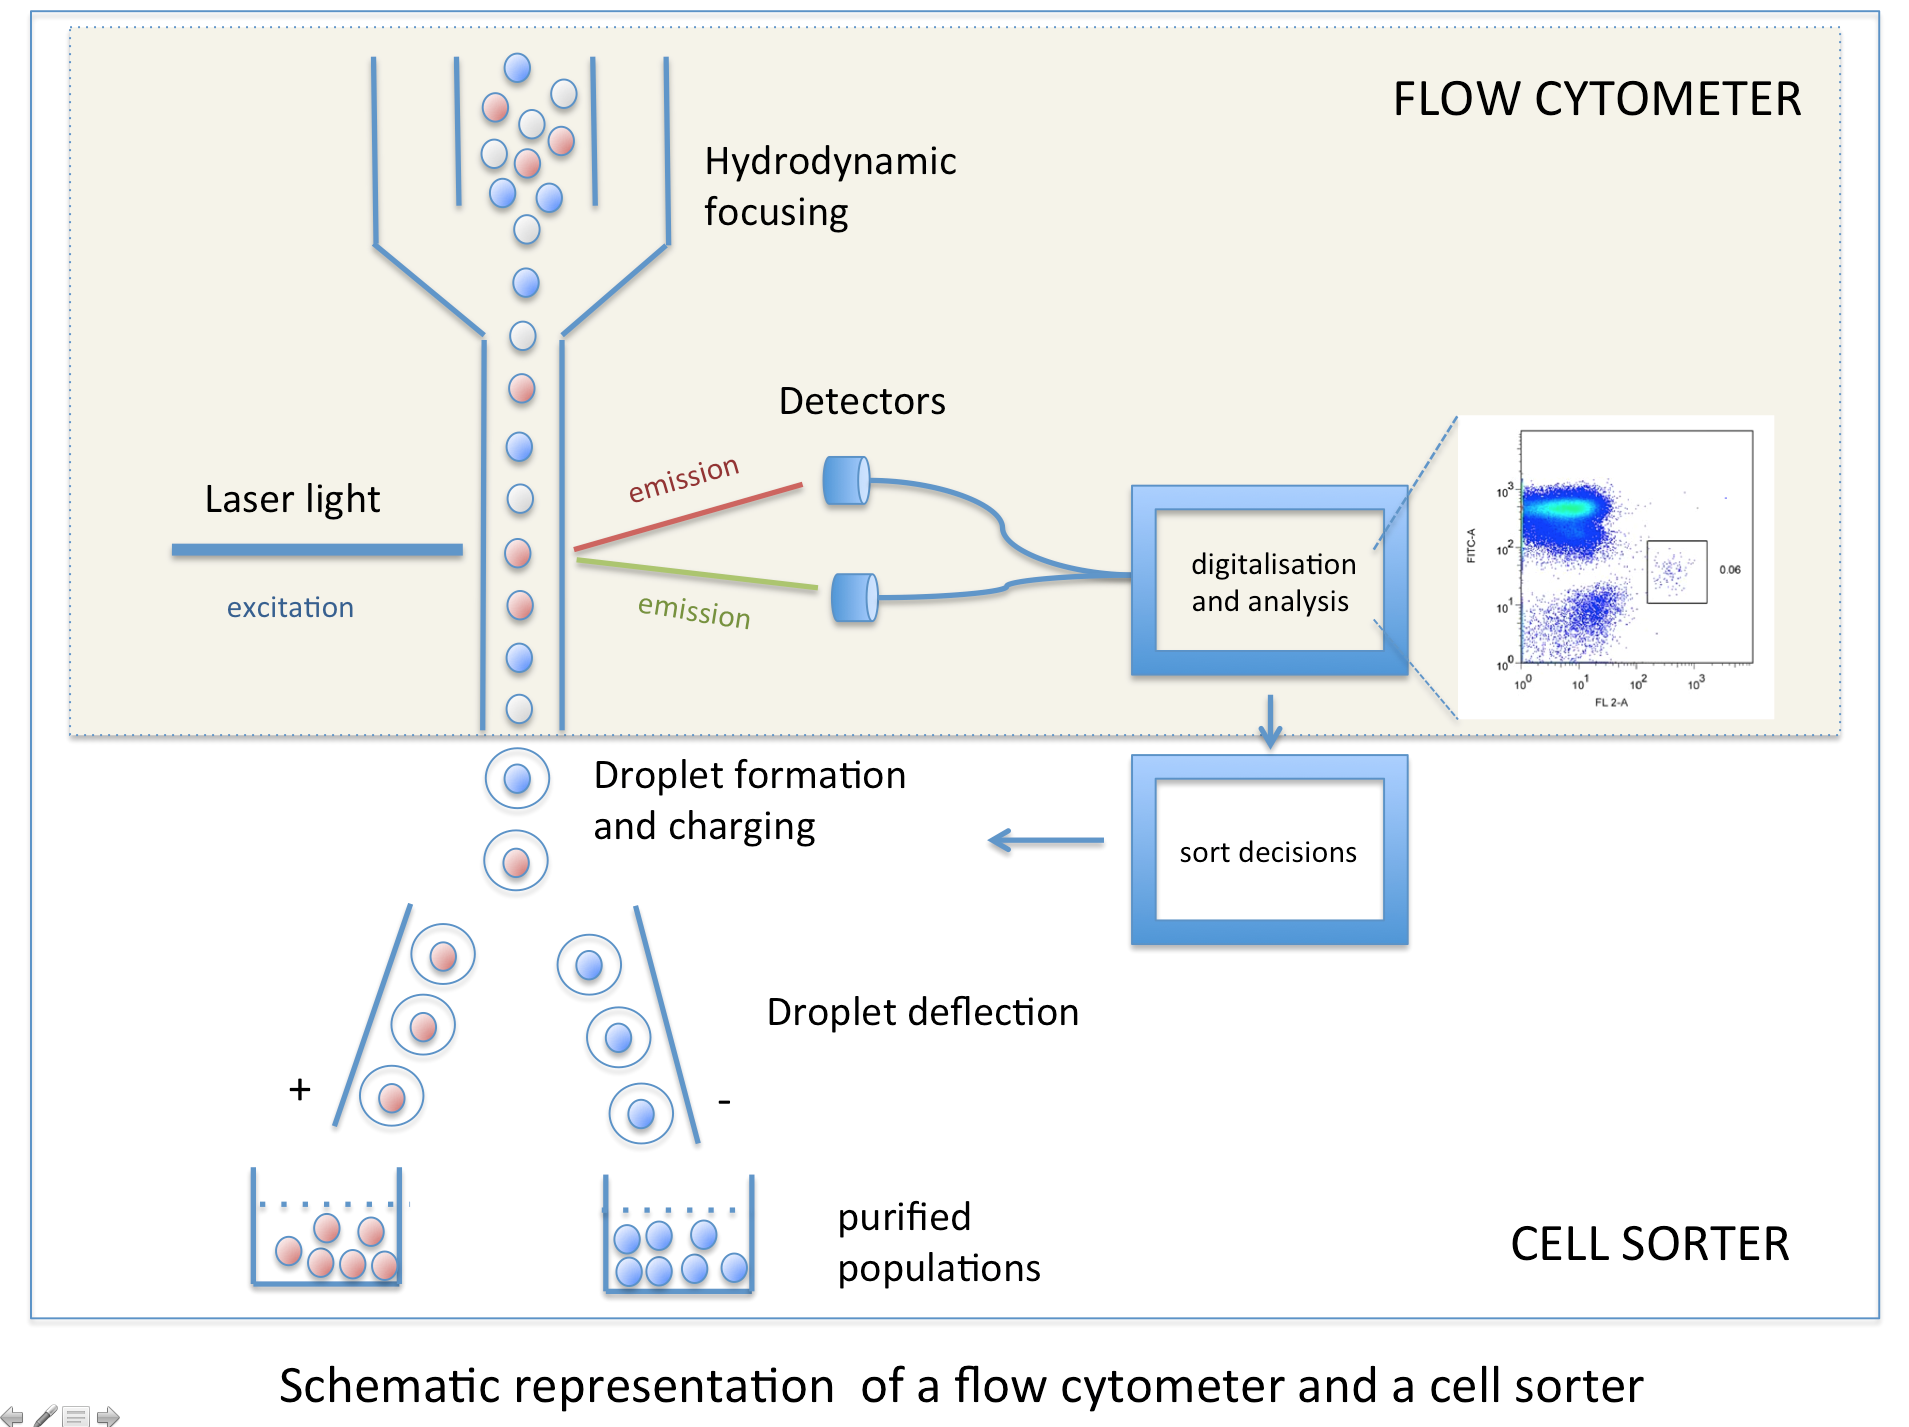 international flow cytometry market drivers and It is an easy-to-use and highly intuitive software package for both flow cytometry data collection and analysis, it provides a powerful range of professional flow cytometry data analysis functionalities, as well as turn-key data analysis functions.